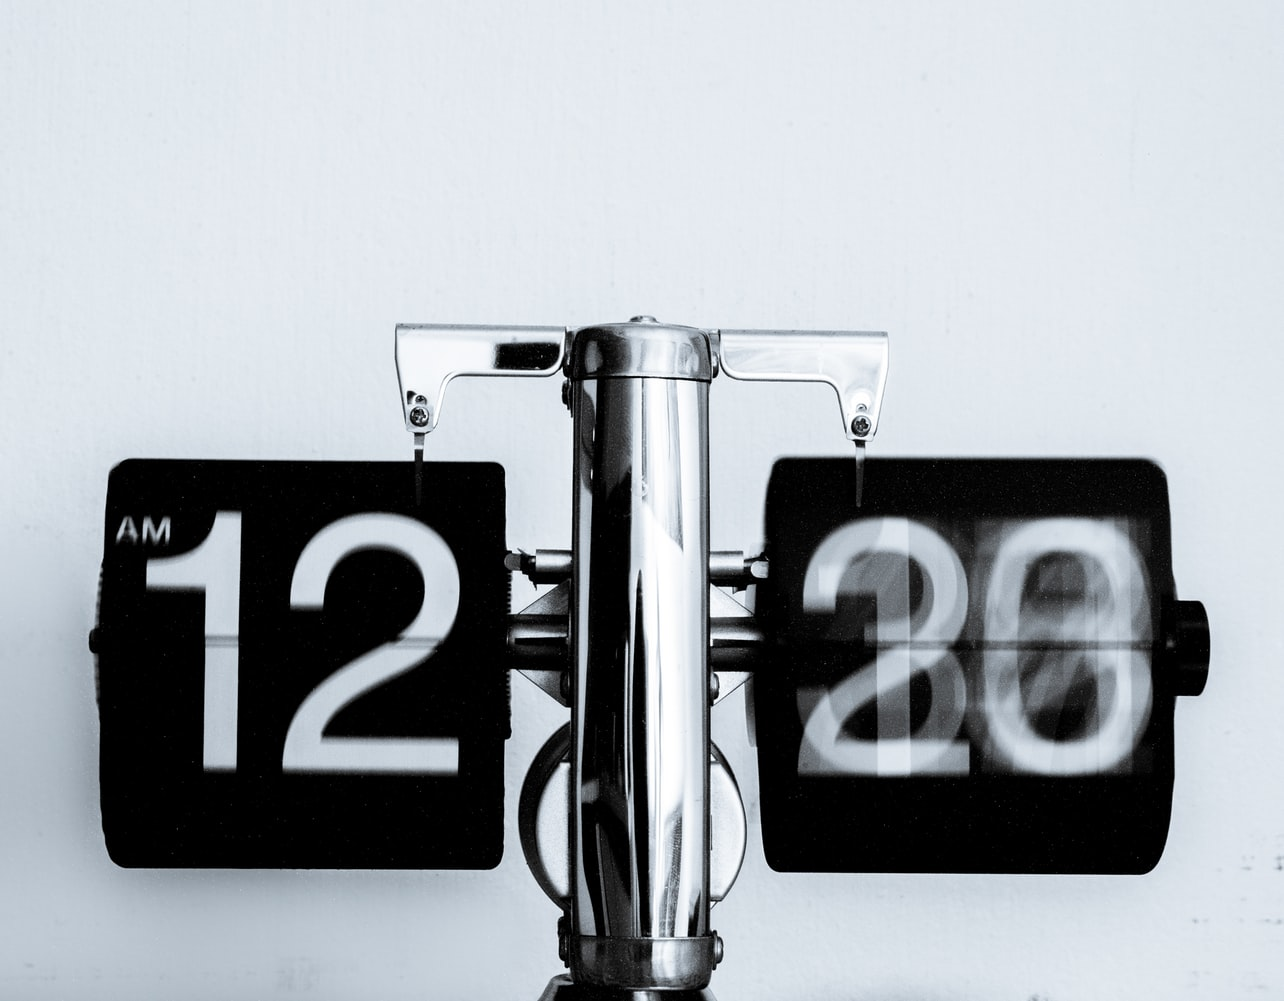 Black and white analog clock showing 12 a.m.